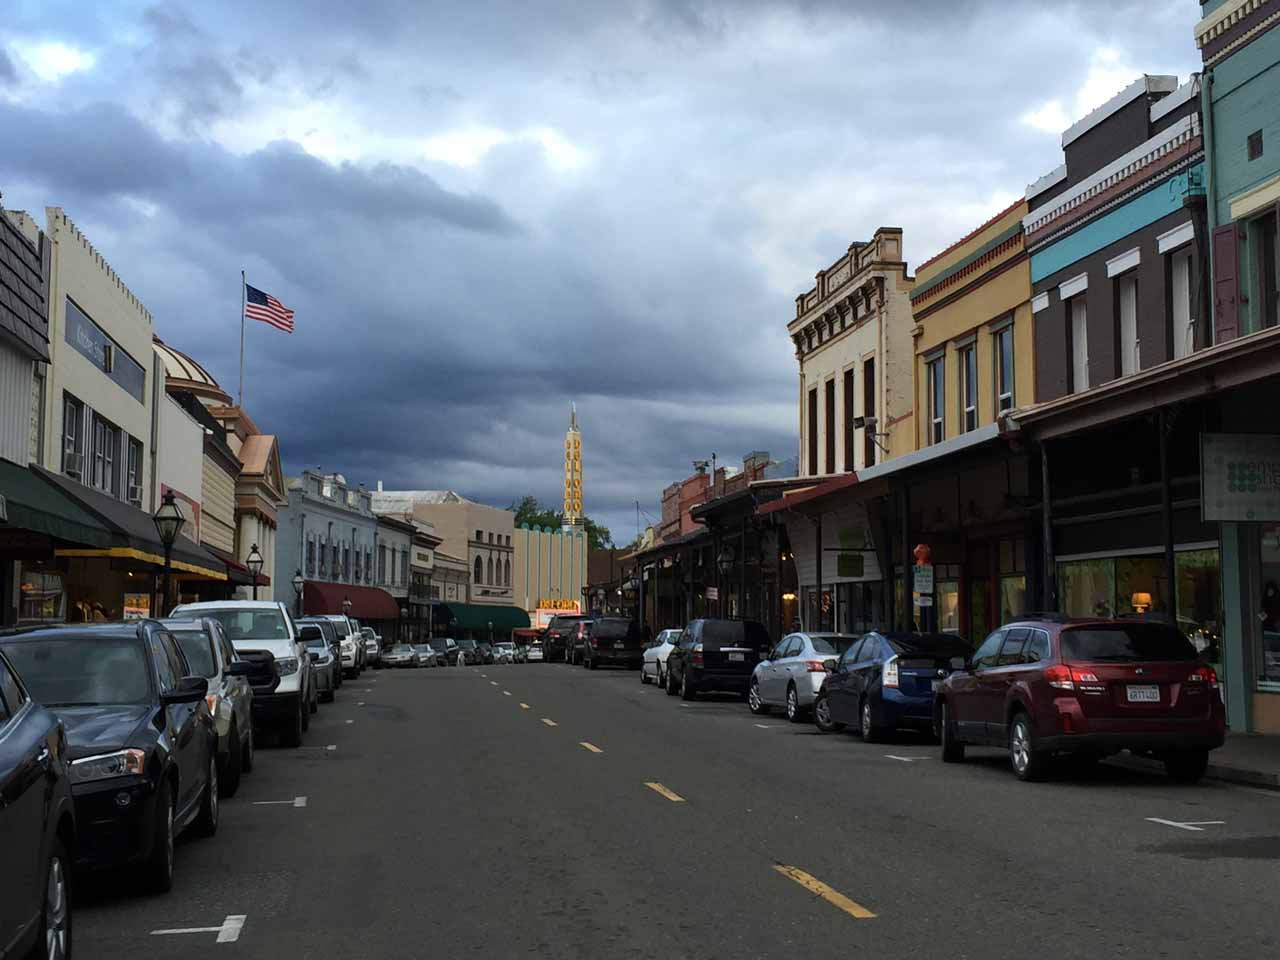 Nearby Rush Creek Falls was the historic town of Grass Valley, where the architecture here seemed to bring us back to the 19th century with a bit of a modern twist